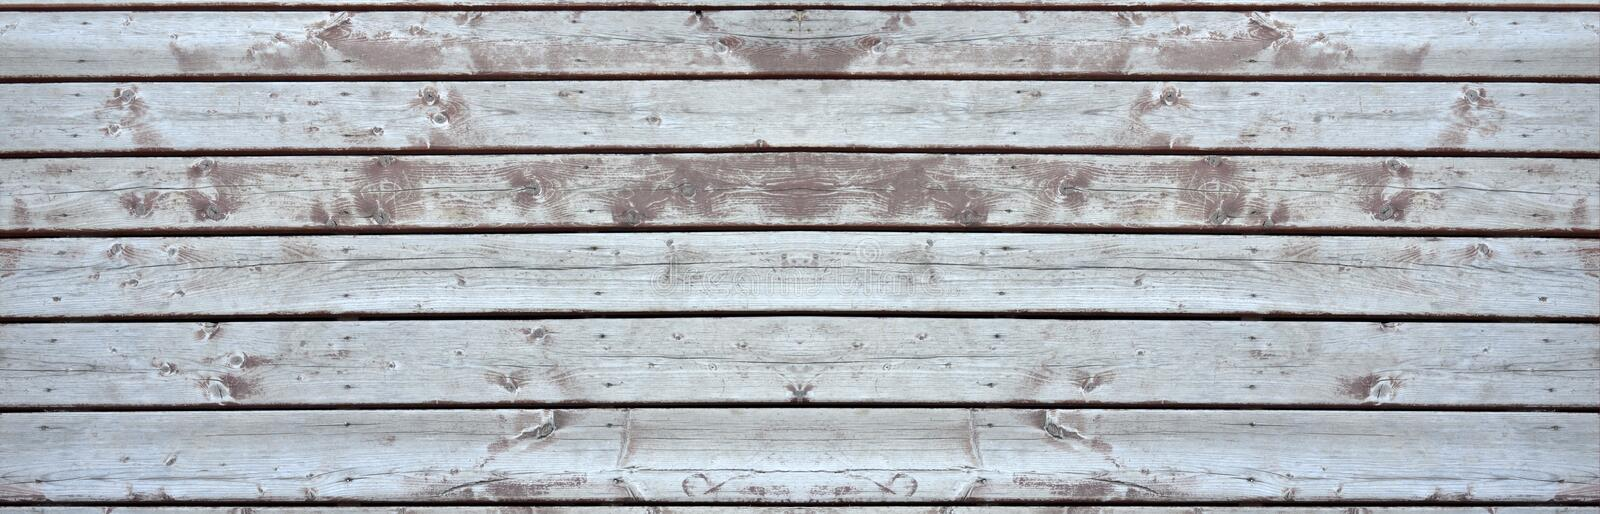 Old wooden deck elongated. Old wooden deck in need of repair and renovation - elongated royalty free stock photos